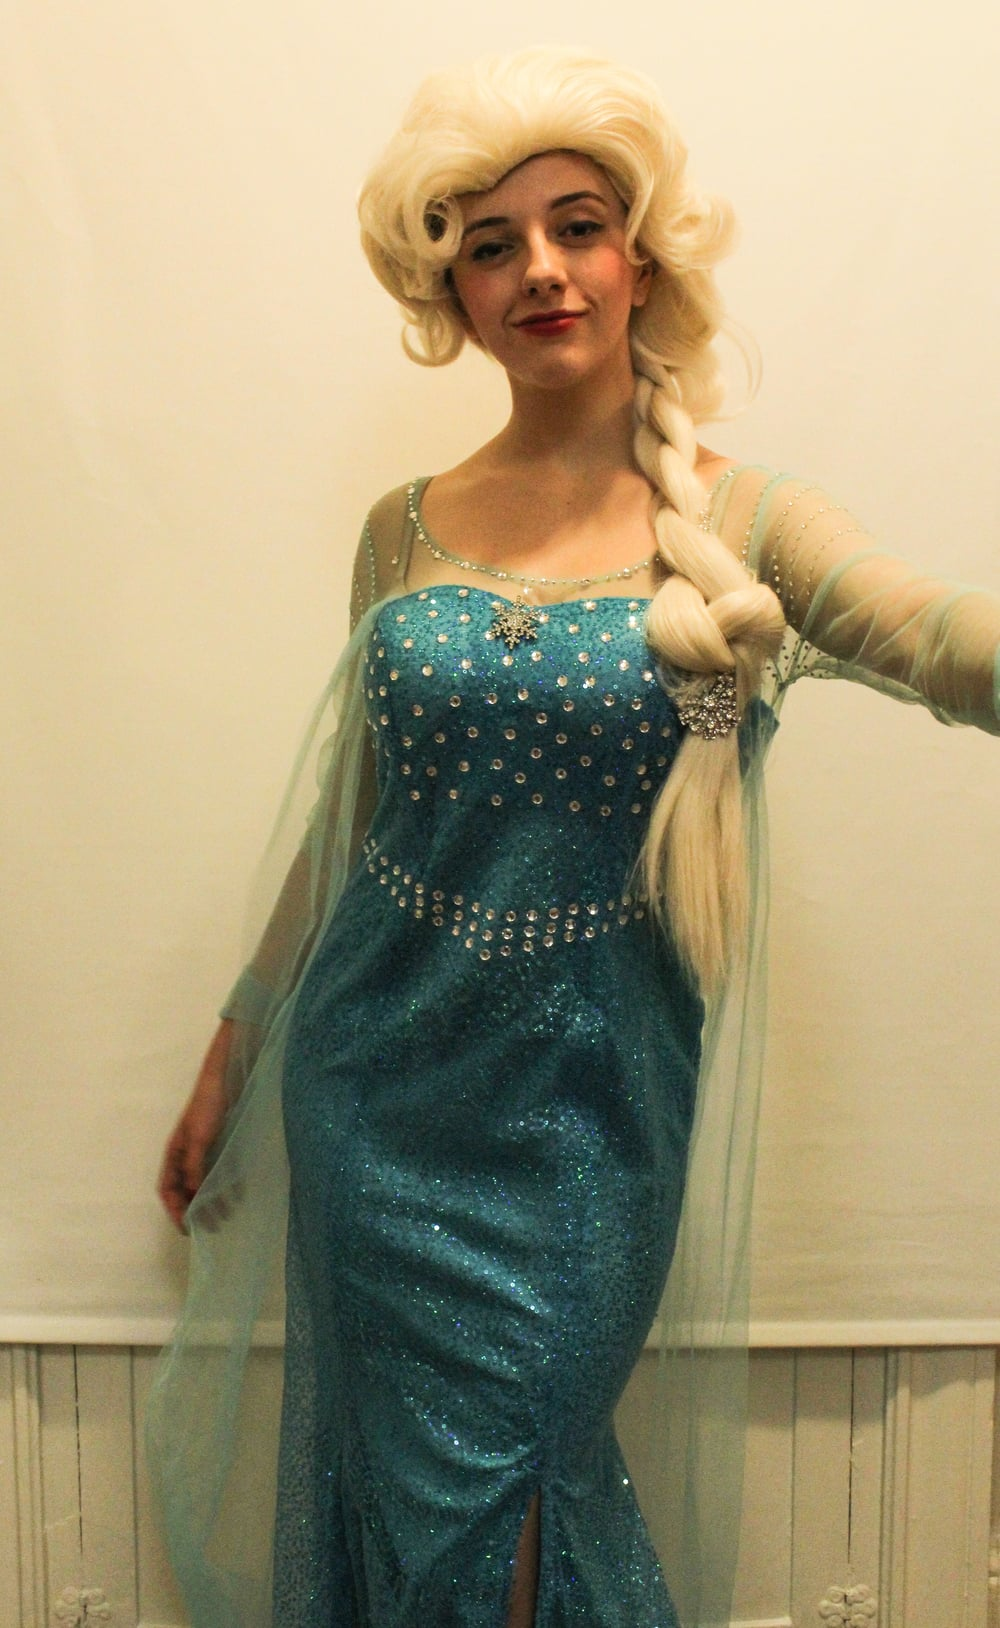 princess elsa edited 1.jpg